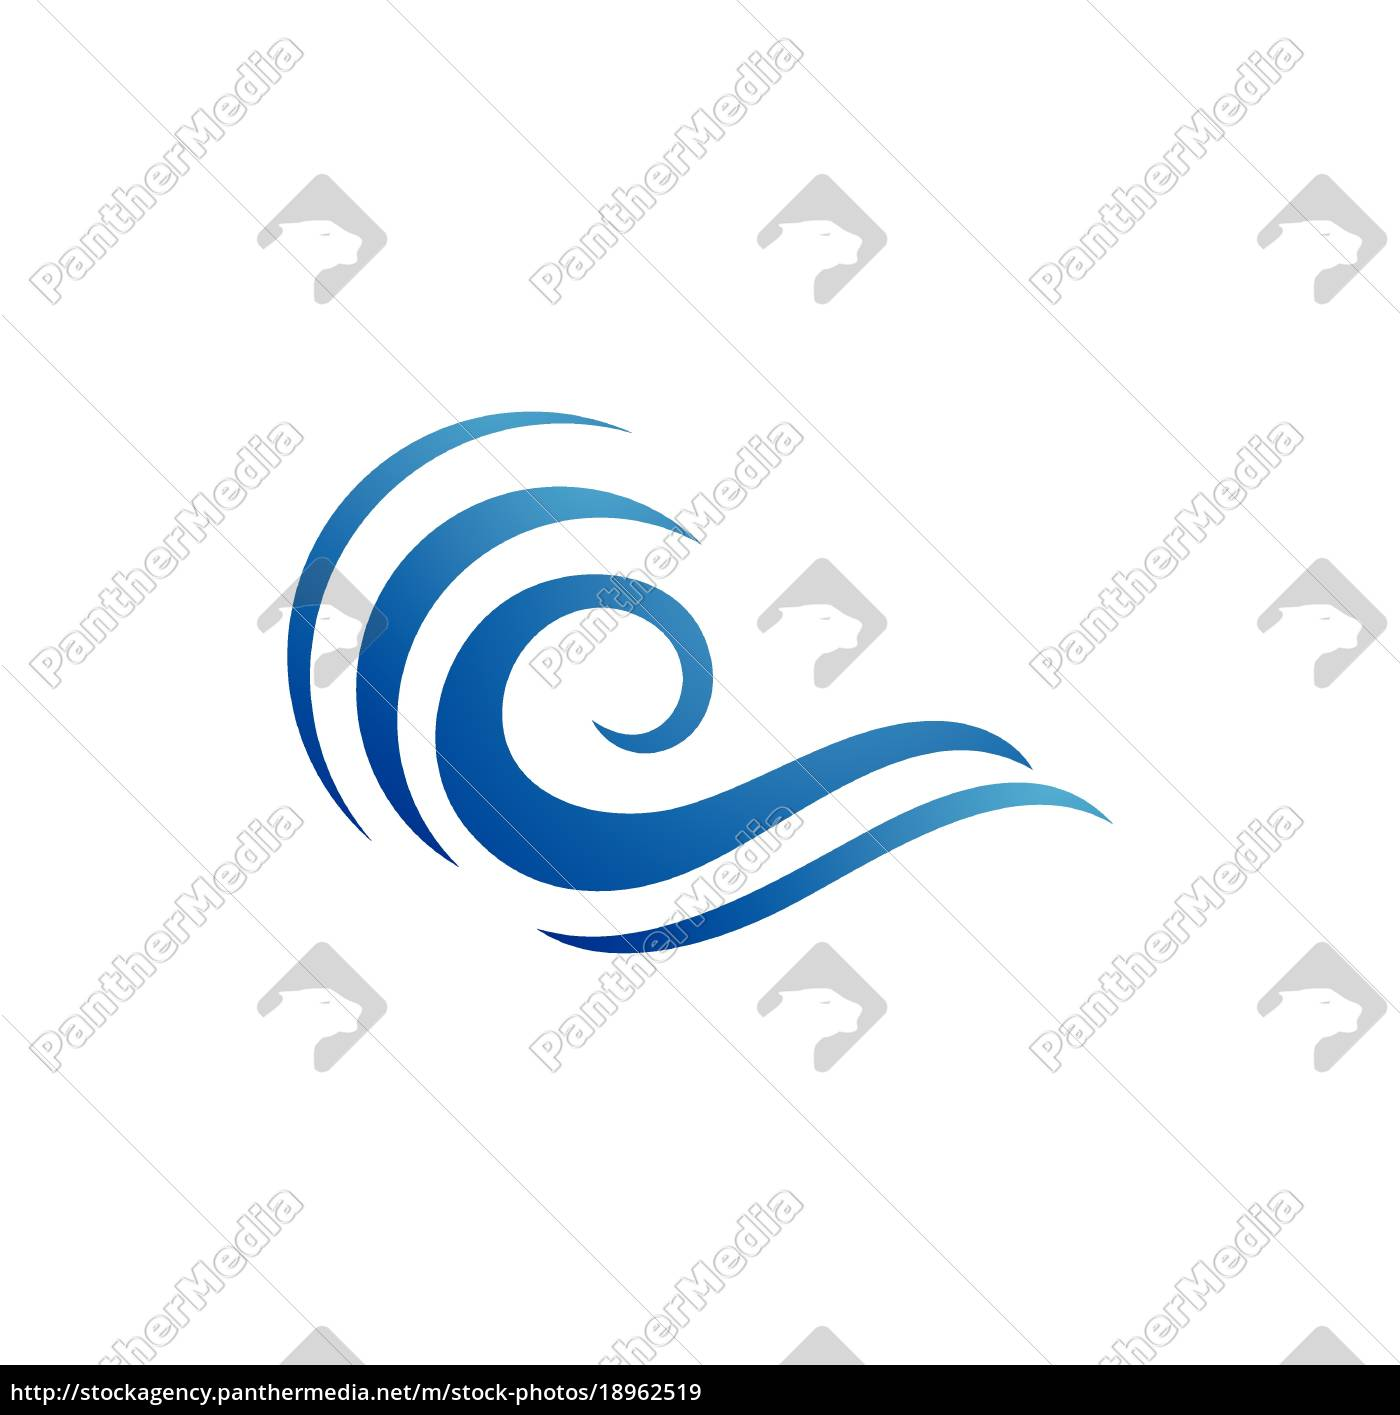 water, wave, symbol, and, icon, logo - 18962519